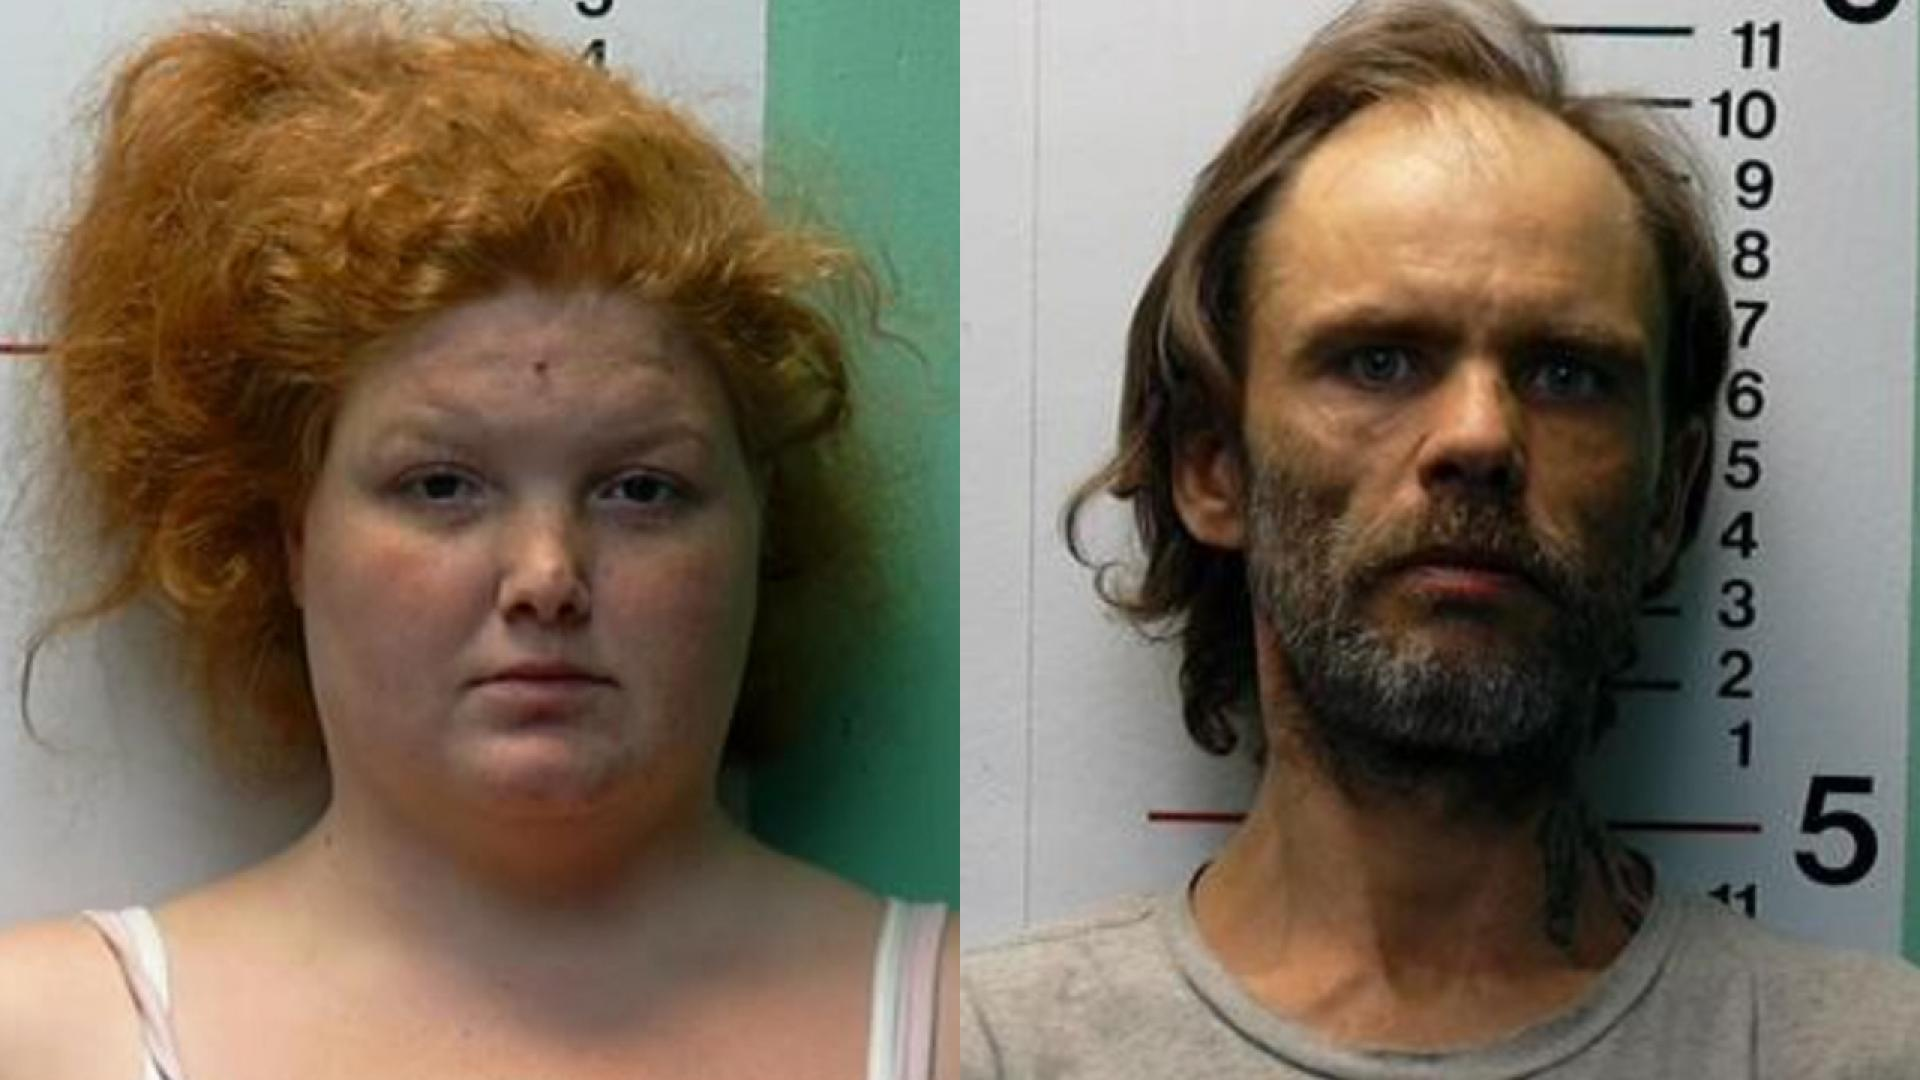 Brittany Gosney, 29, and her boyfriend James Hamilton, 42, are charged with dumping 6 year old James Hutchinson in the Ohio River